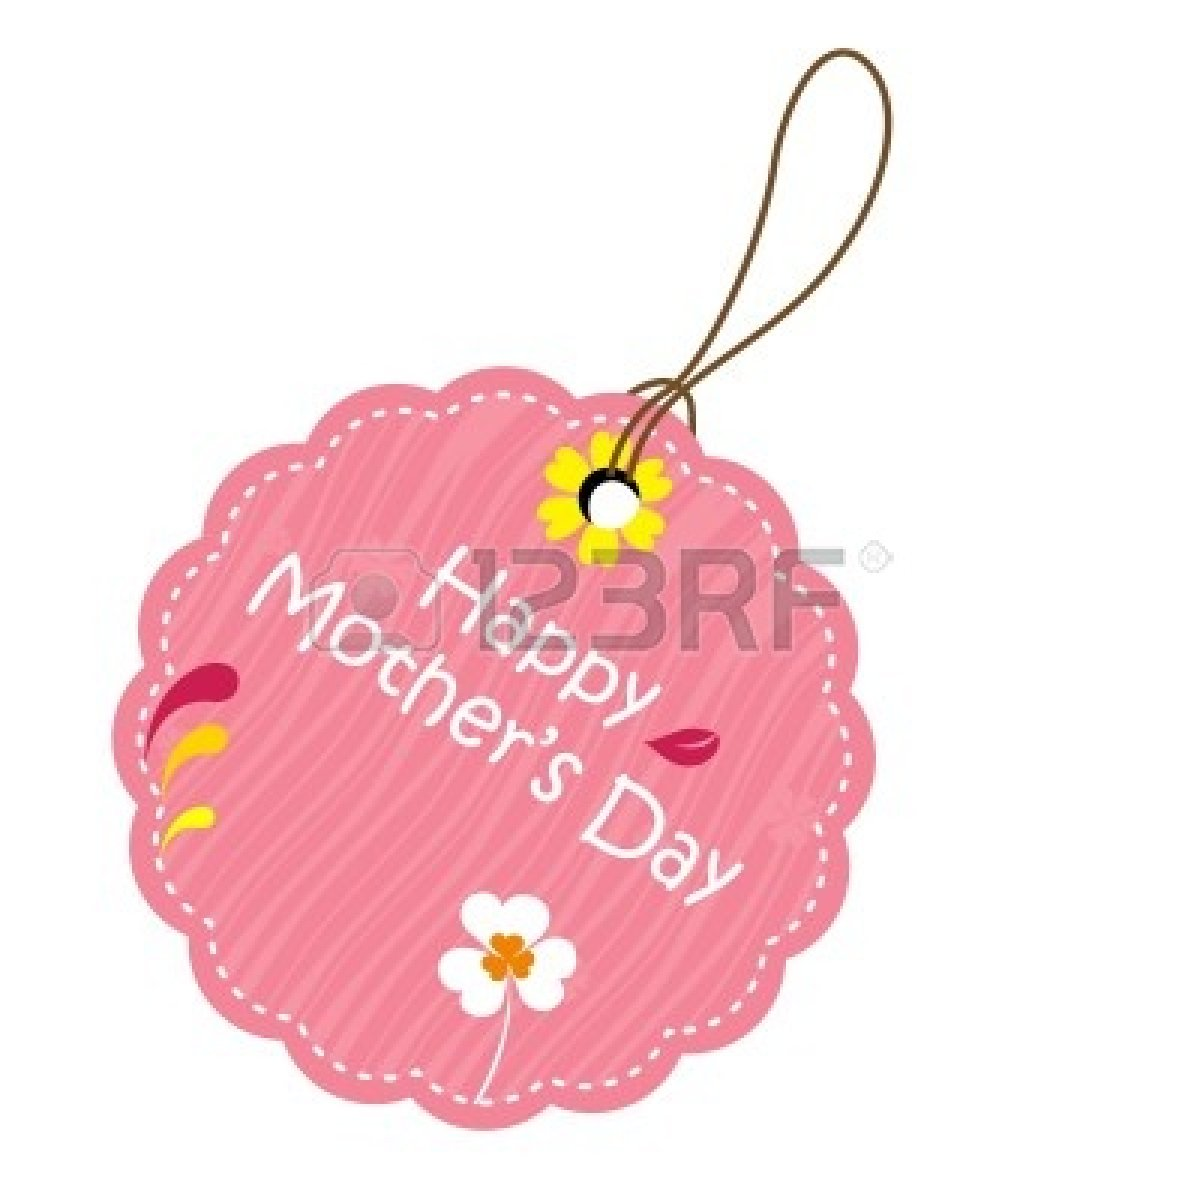 African american mothers day clipart 4 » Clipart Station.